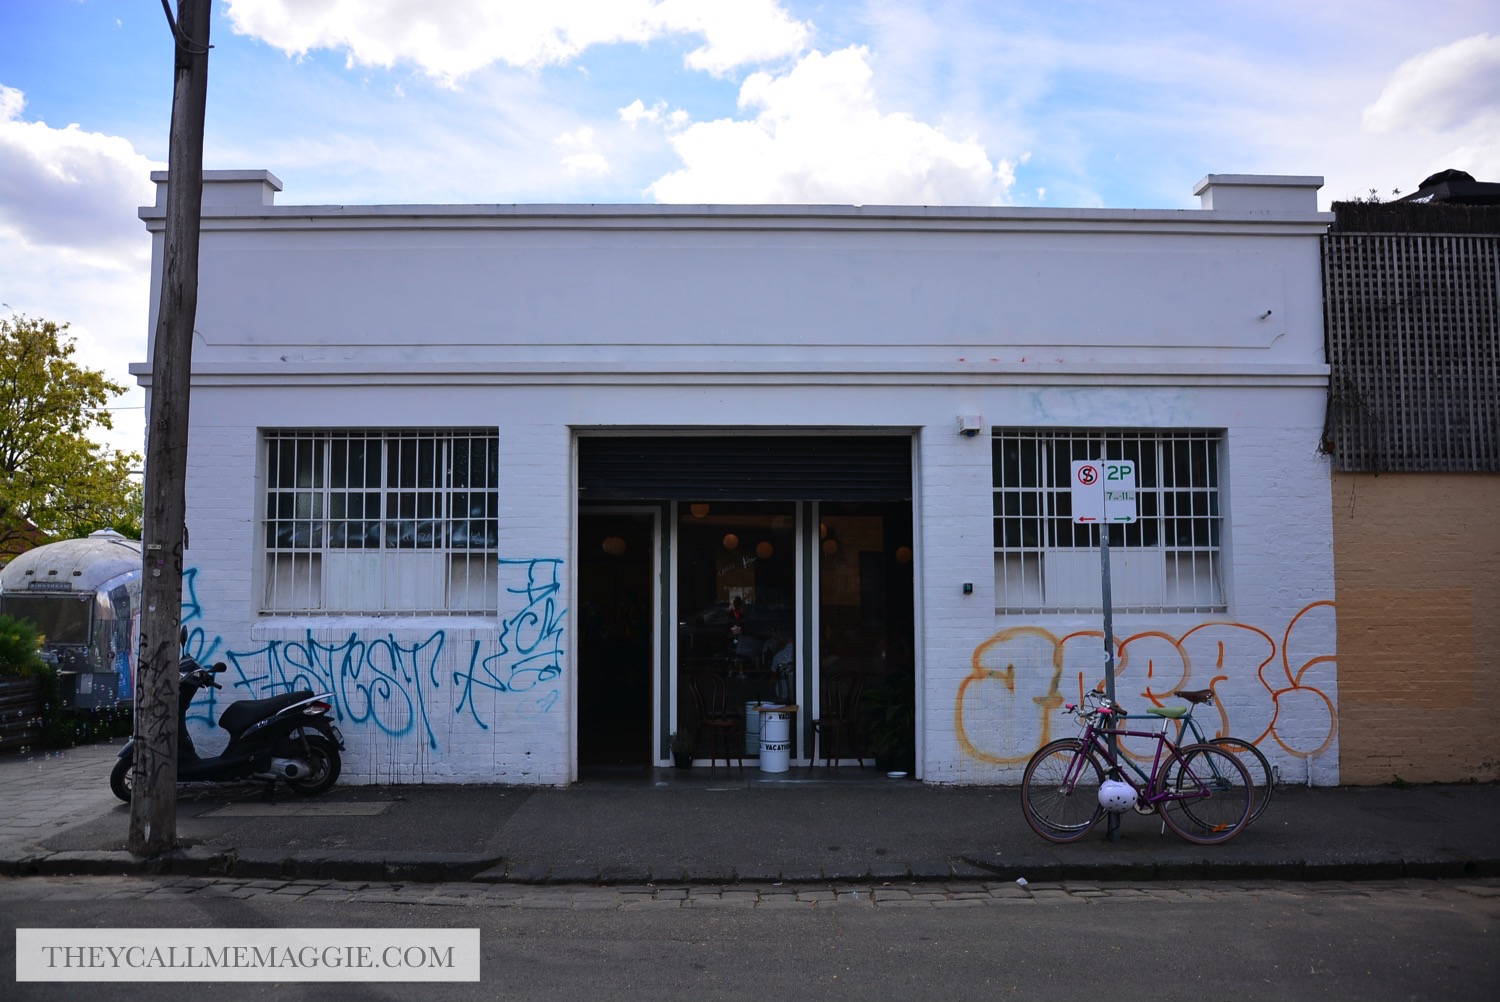 fitzroy-cafe-louis.jpg